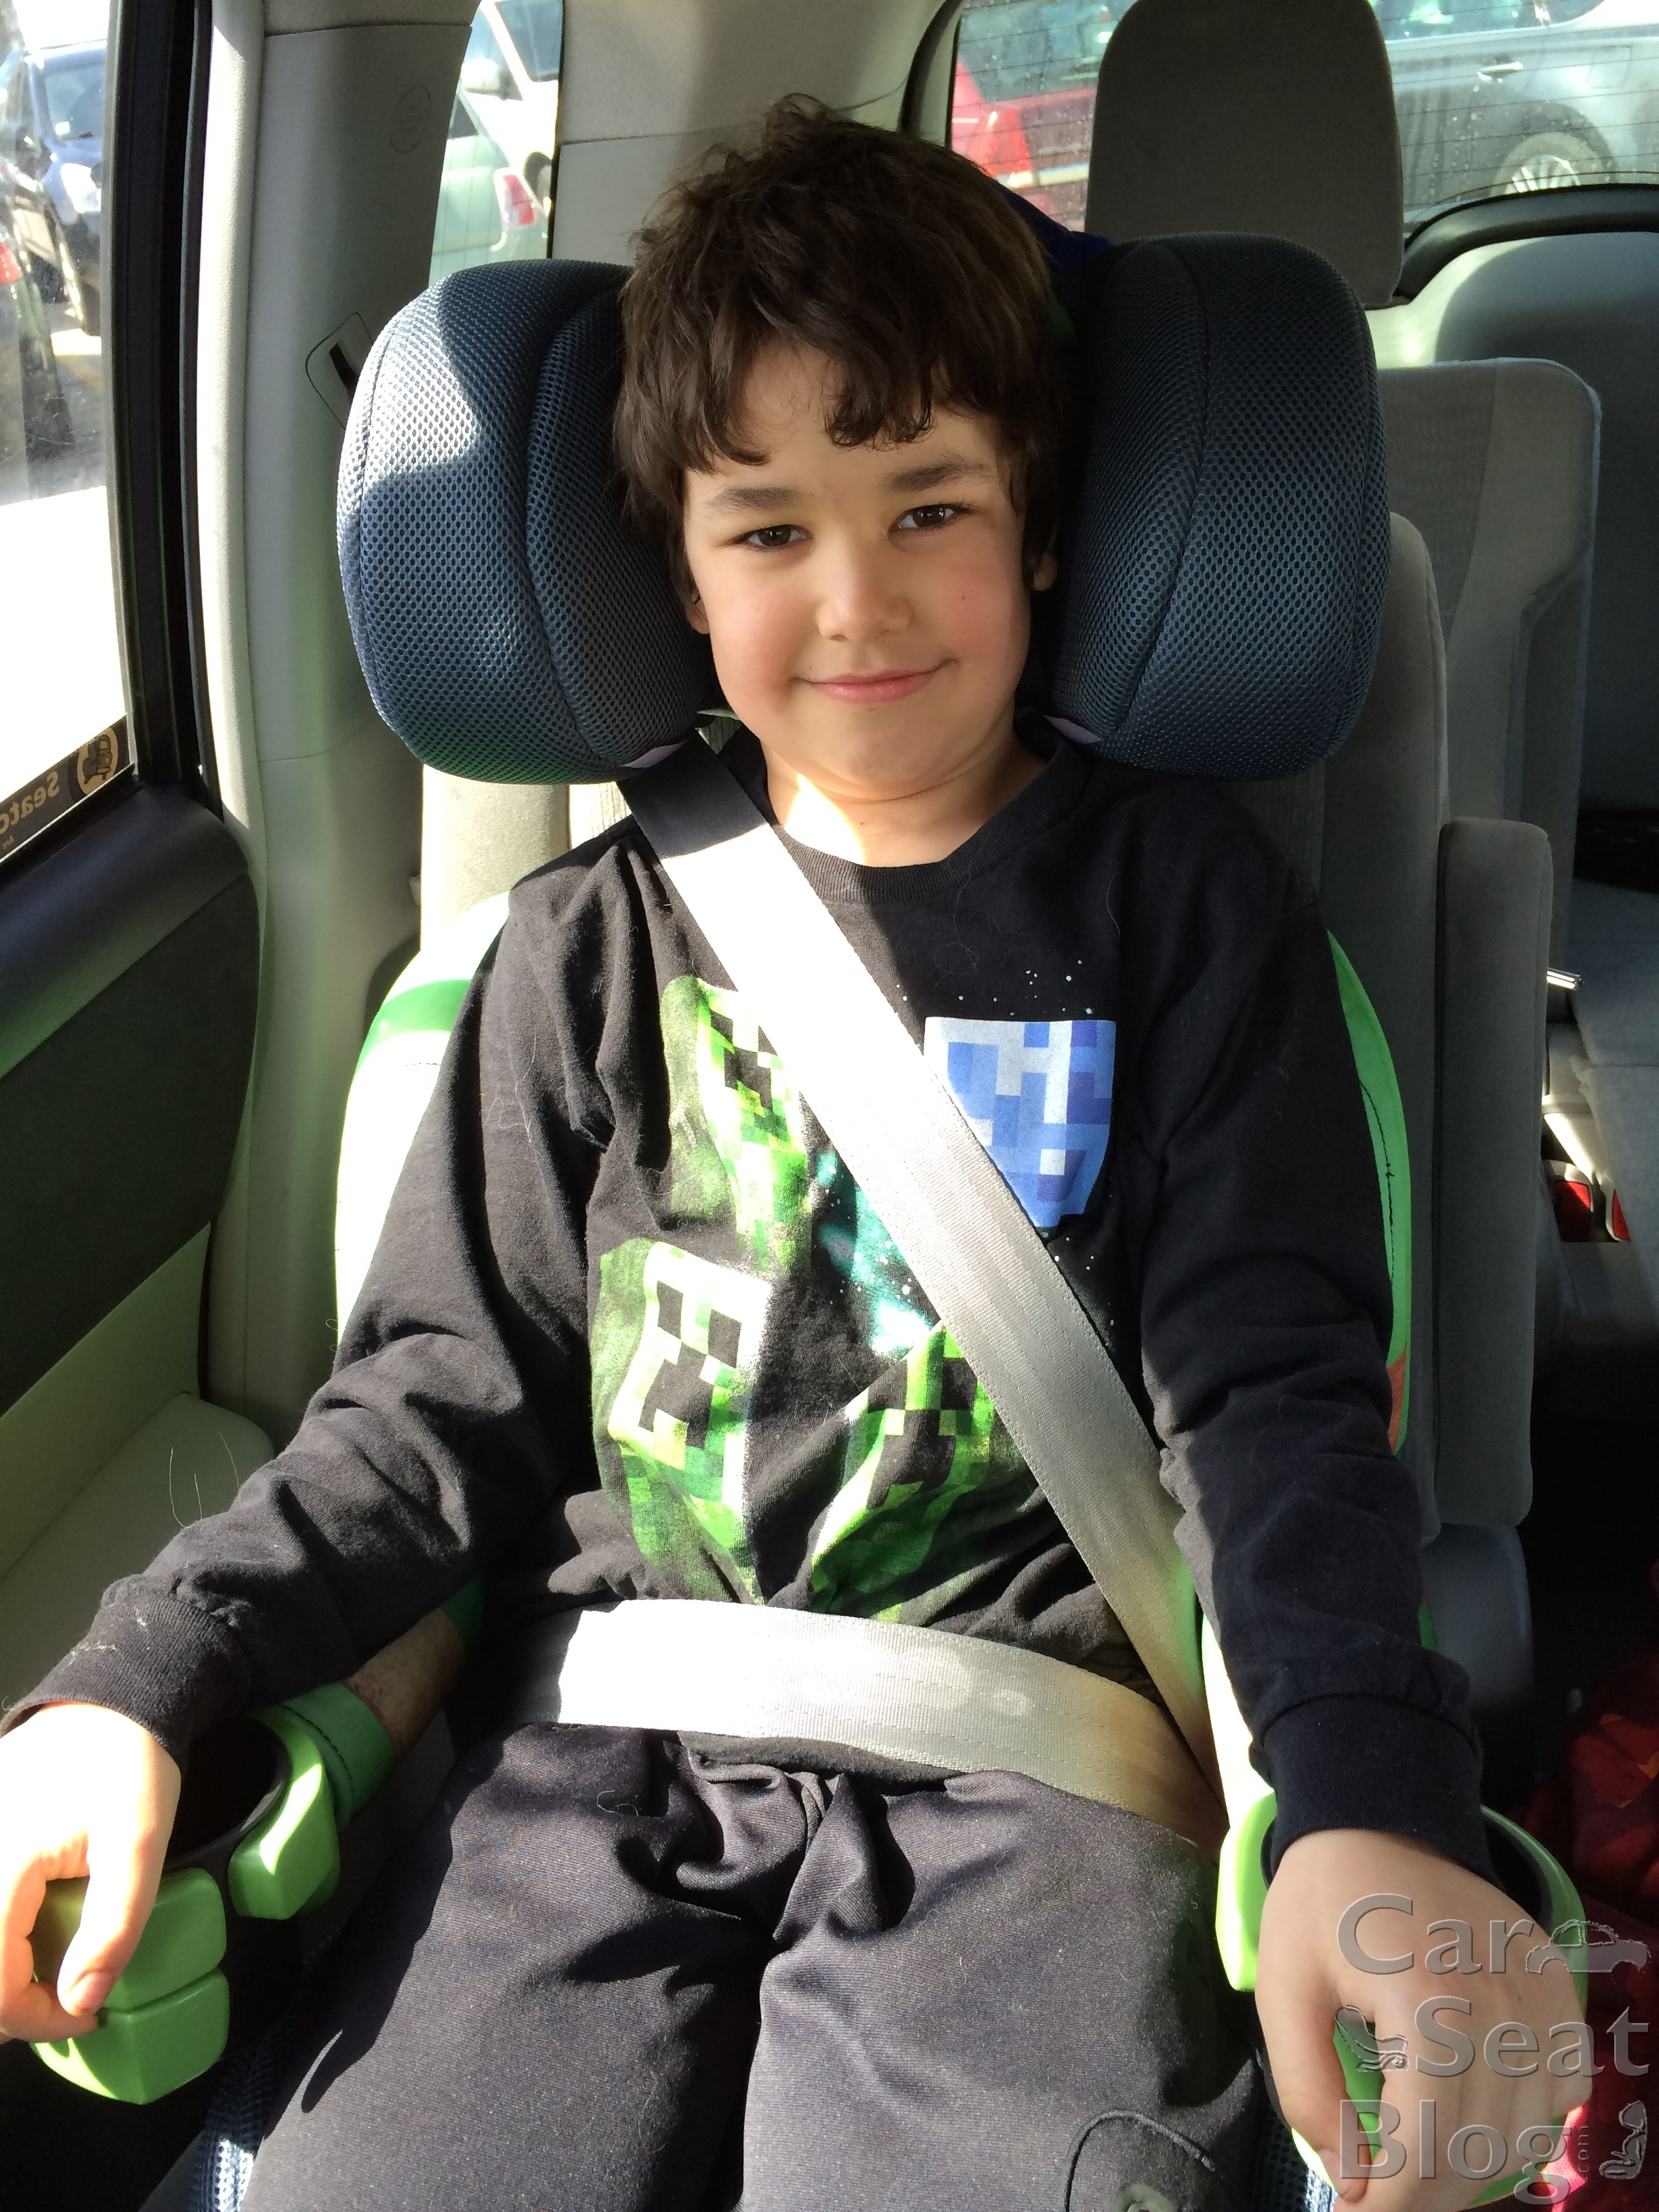 booster chairs for kids study table and chair carseatblog the most trusted source car seat reviews